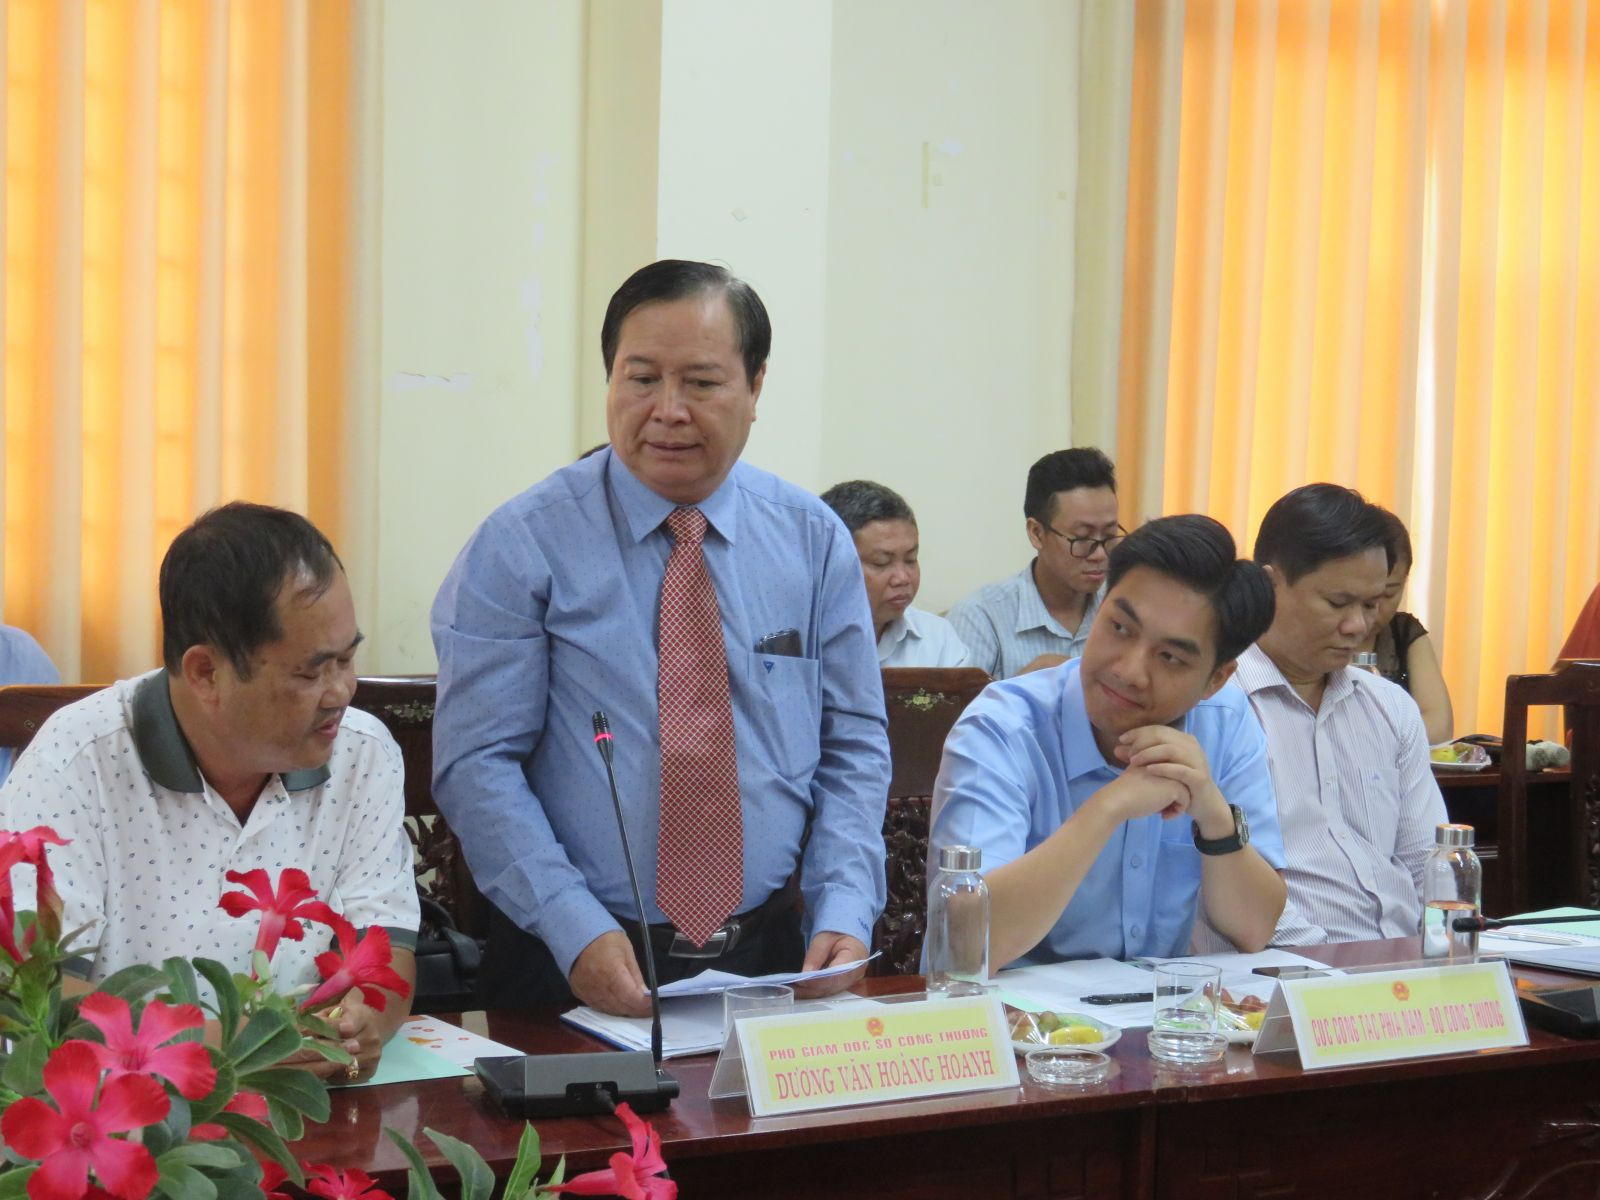 Deputy Director of Department of Industry and Trade - Duong Van Hoang Hoanh informed that Long An had many typical agricultural products such as rice, dragon fruit, seedless lemon and many other processed products